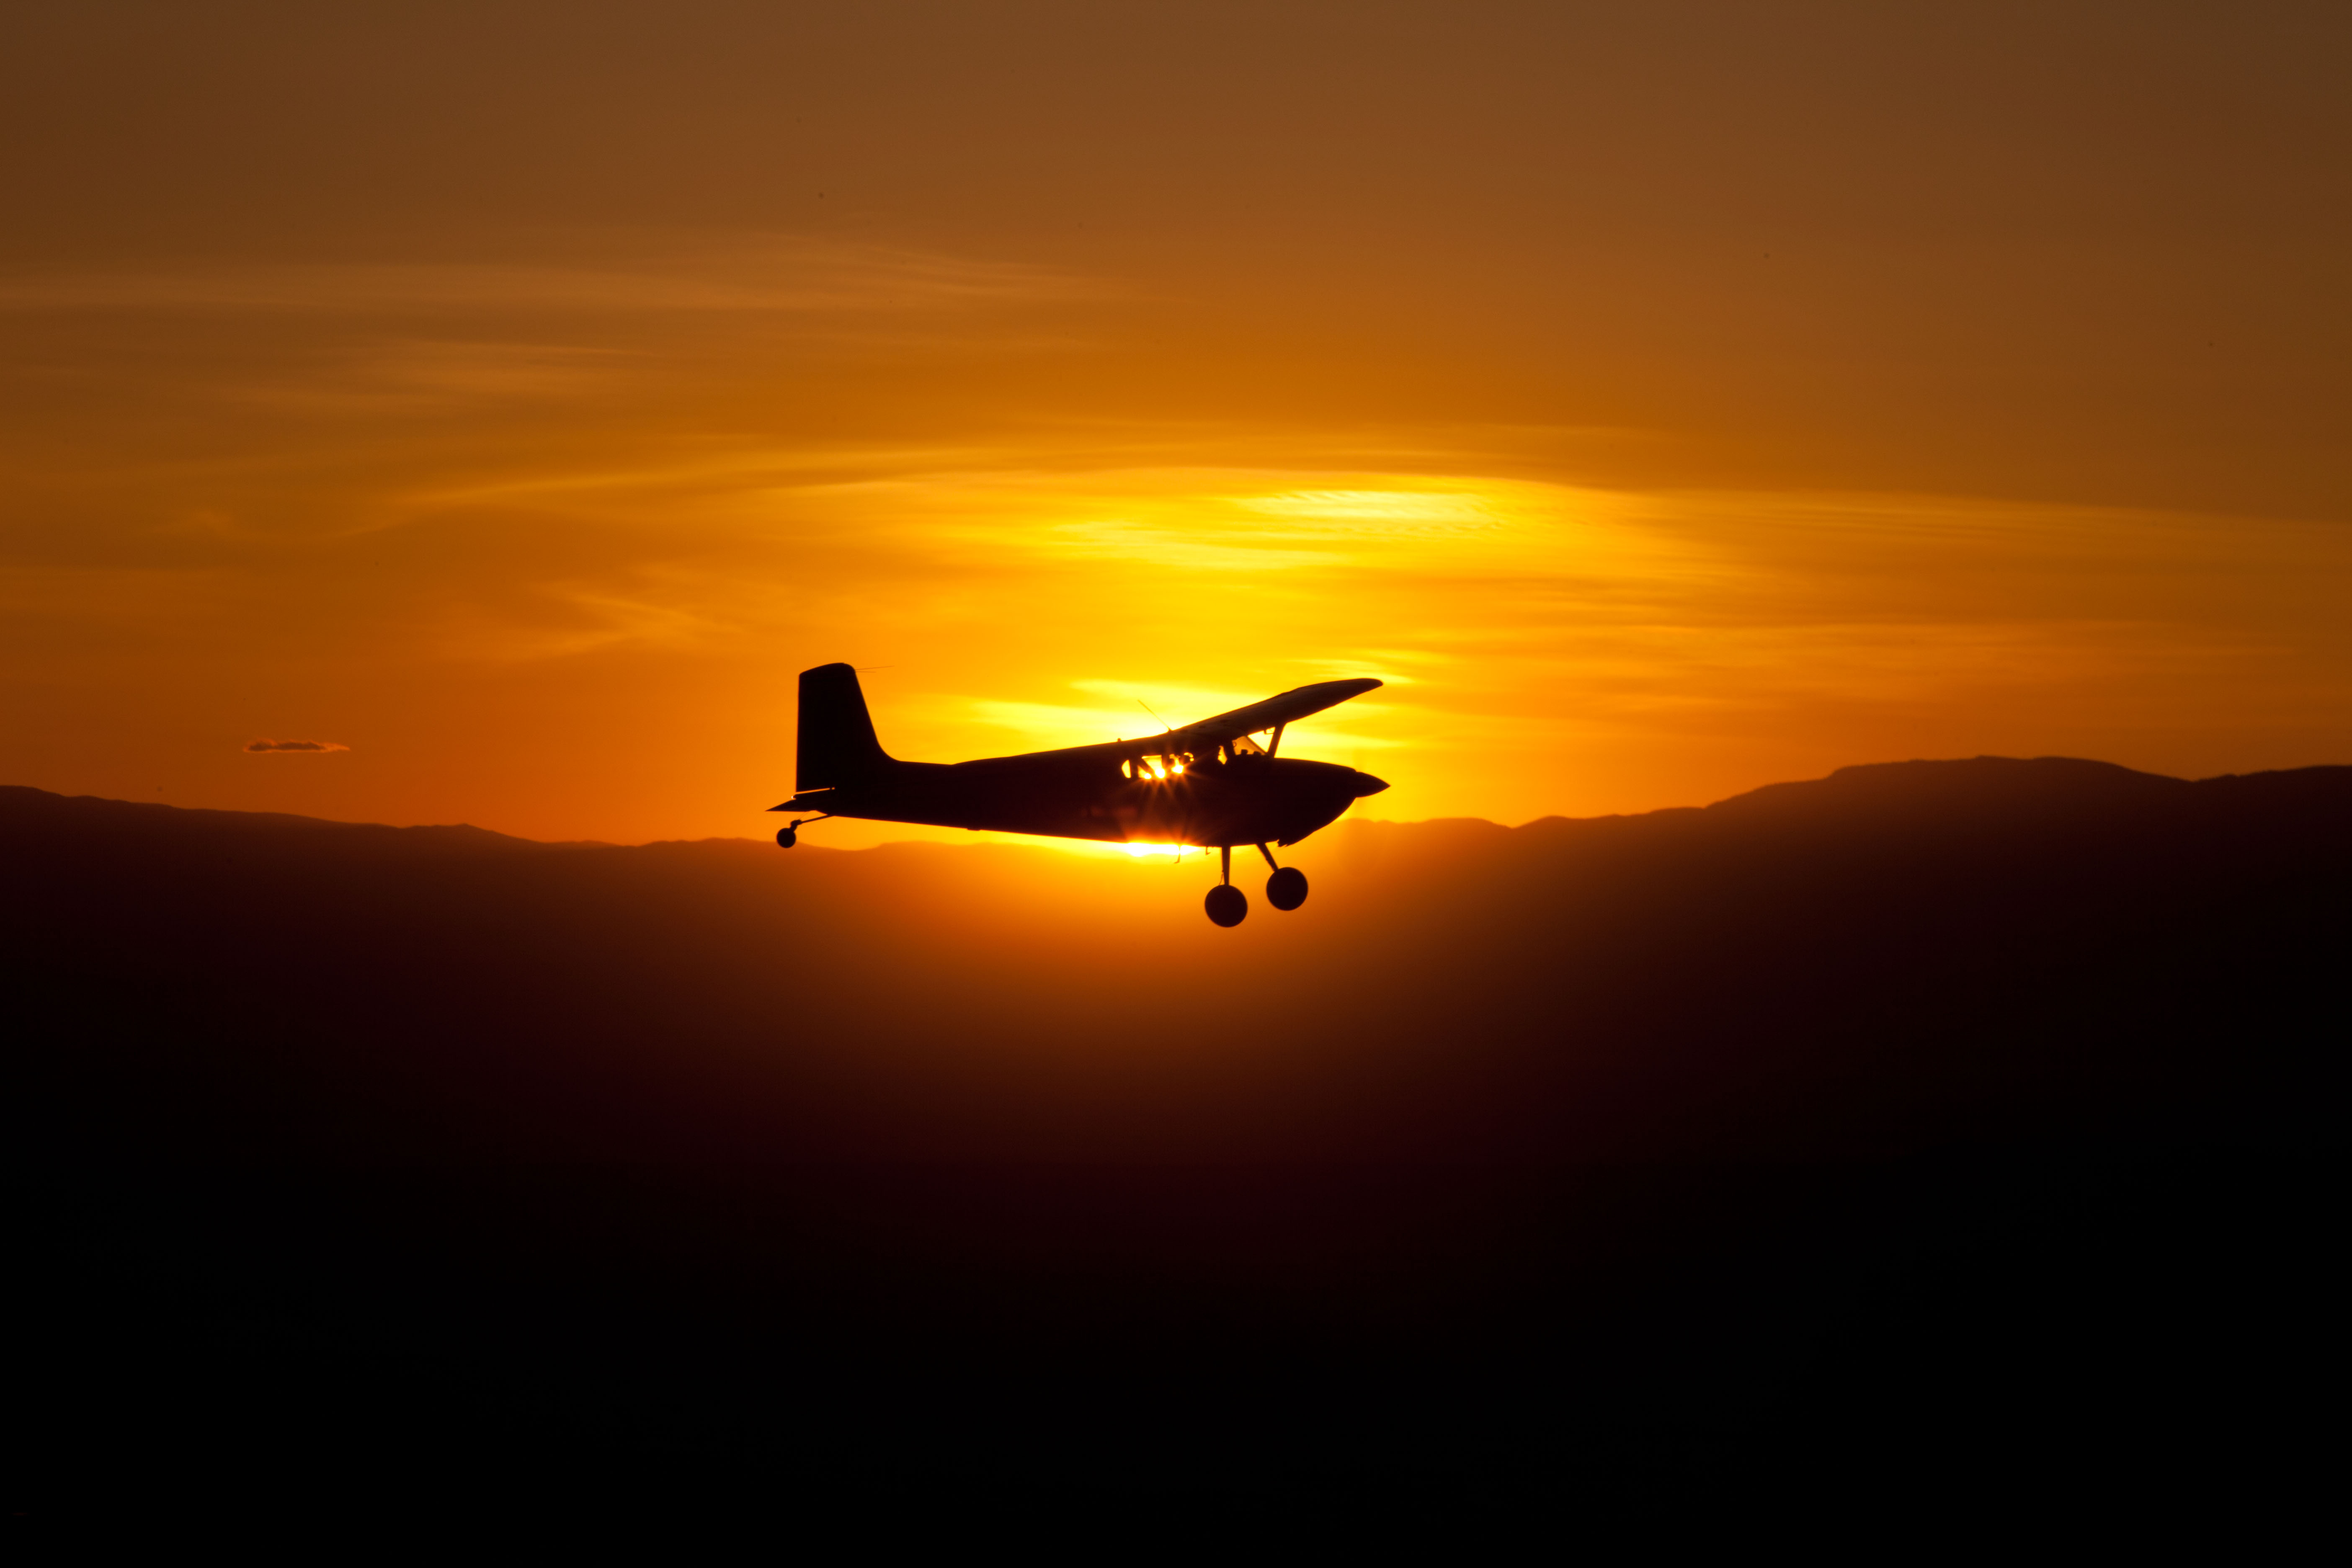 01/05/2014· here are 50 airplane wallpaper backgrounds in hd for free download. Free photo: Plane Sunset - Clouds, Land, Plane - Free